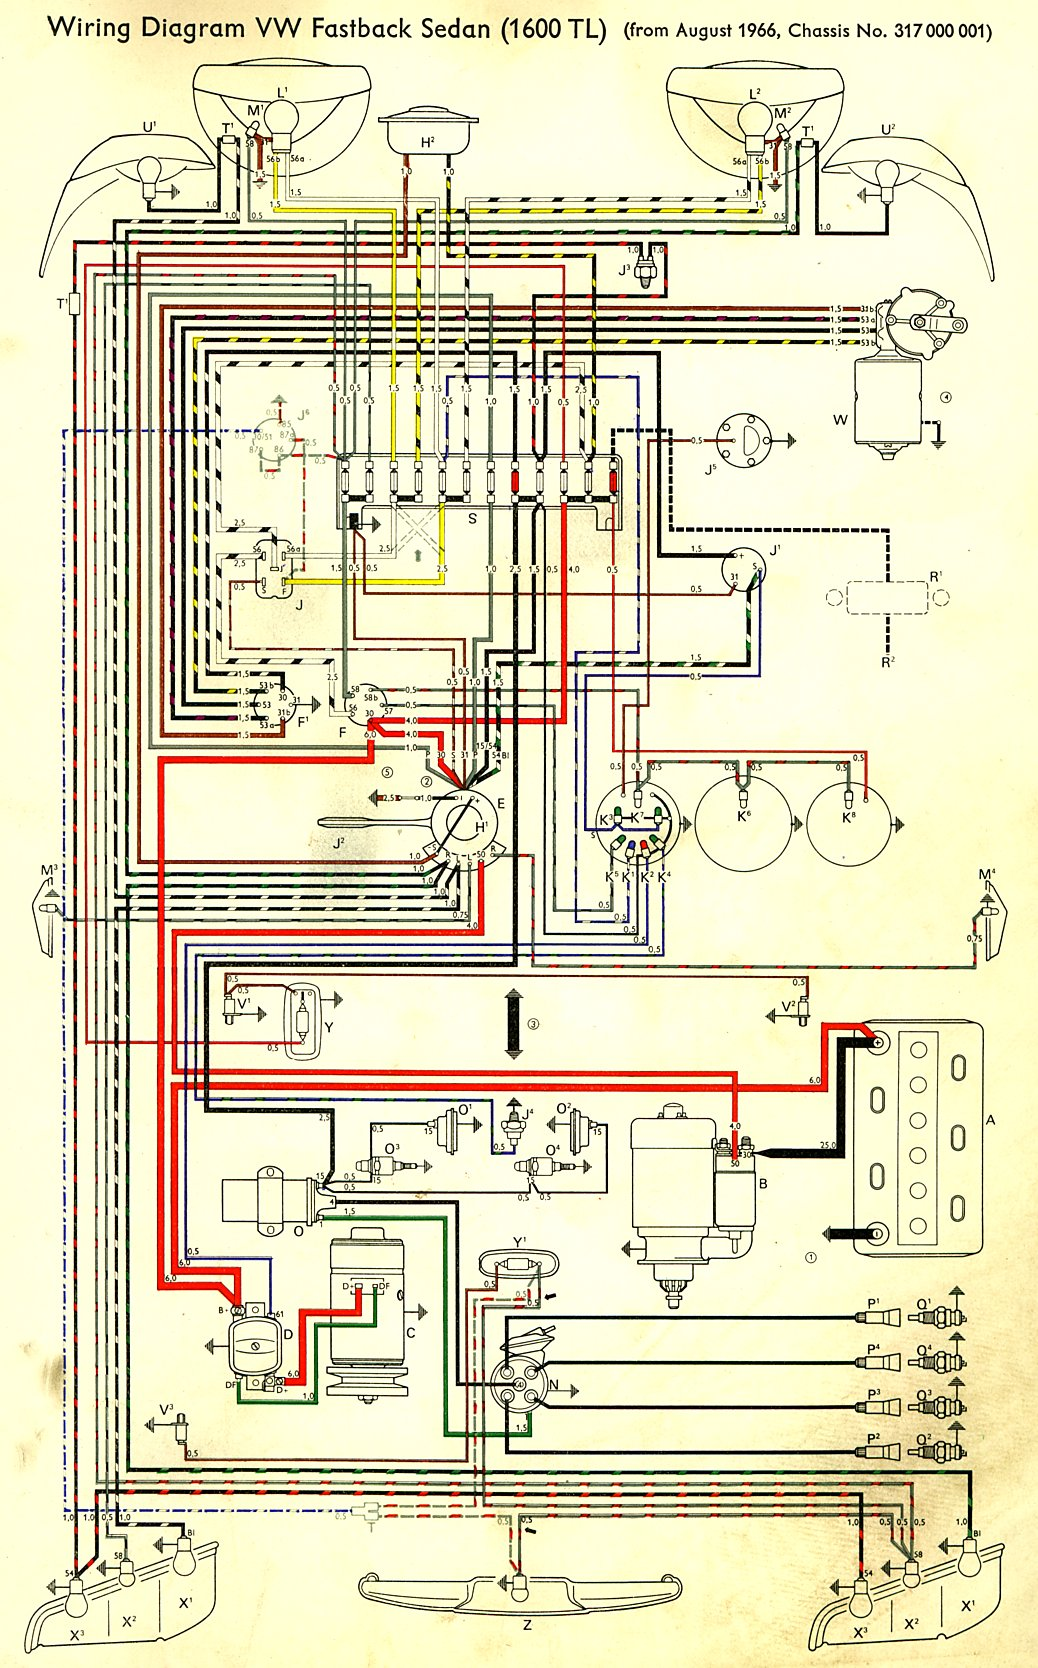 thesamba.com :: type 3 wiring diagrams 67 vw wiring harness free download diagram schematic vw wiring diagrams free #5